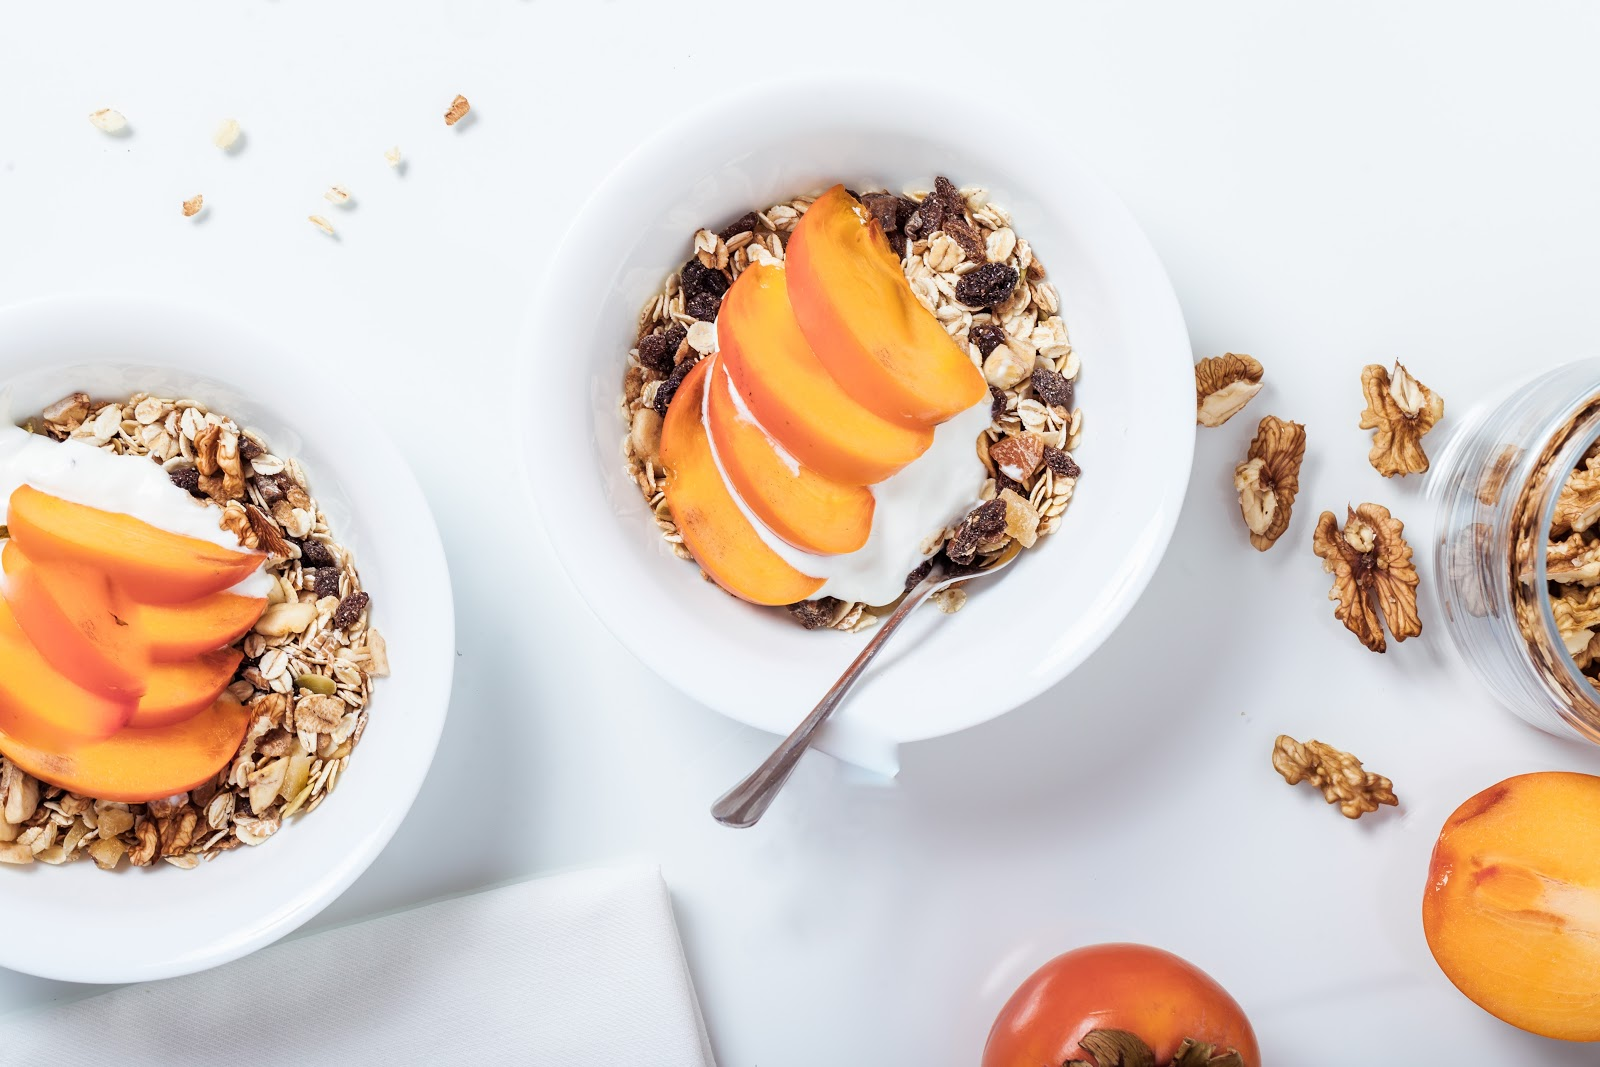 a bowl of granola with sliced peaches on top